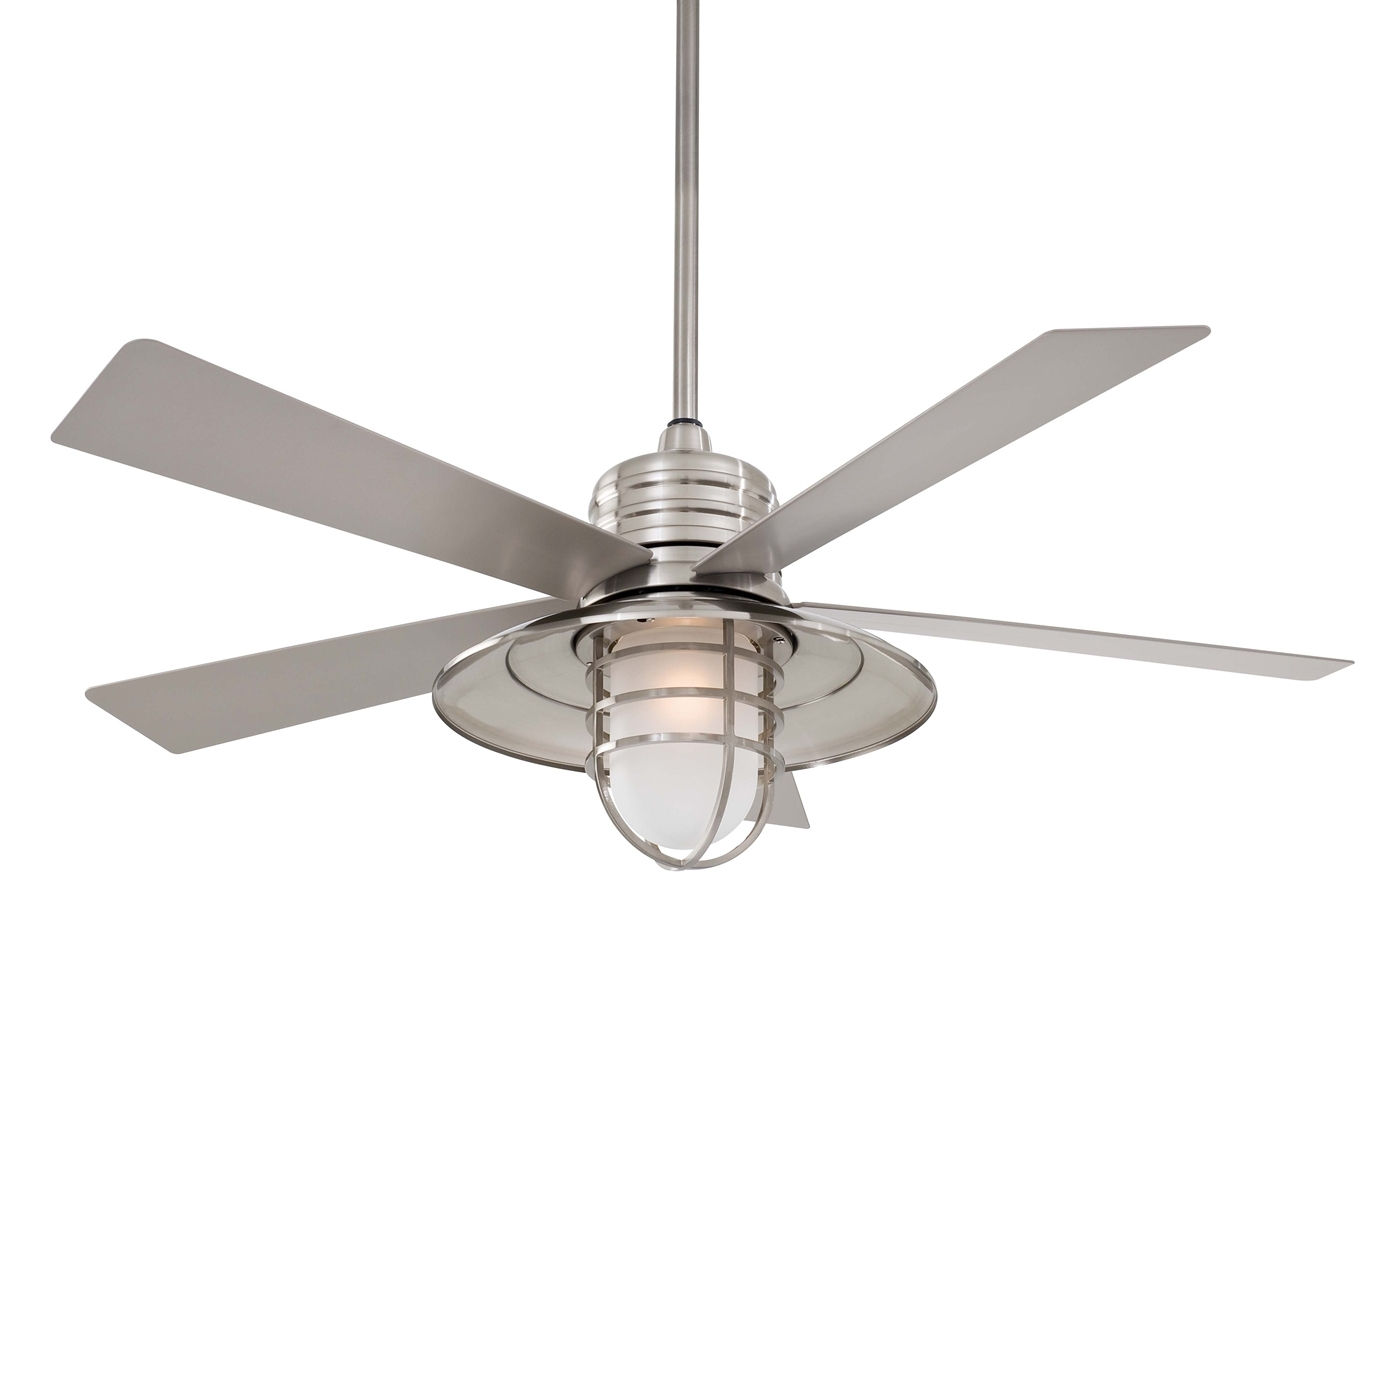 Ceiling Fan: Best Outdoor Ceiling Fans Design Ceiling Fan With Light Within Most Recently Released Rustic Outdoor Ceiling Fans With Lights (View 16 of 20)